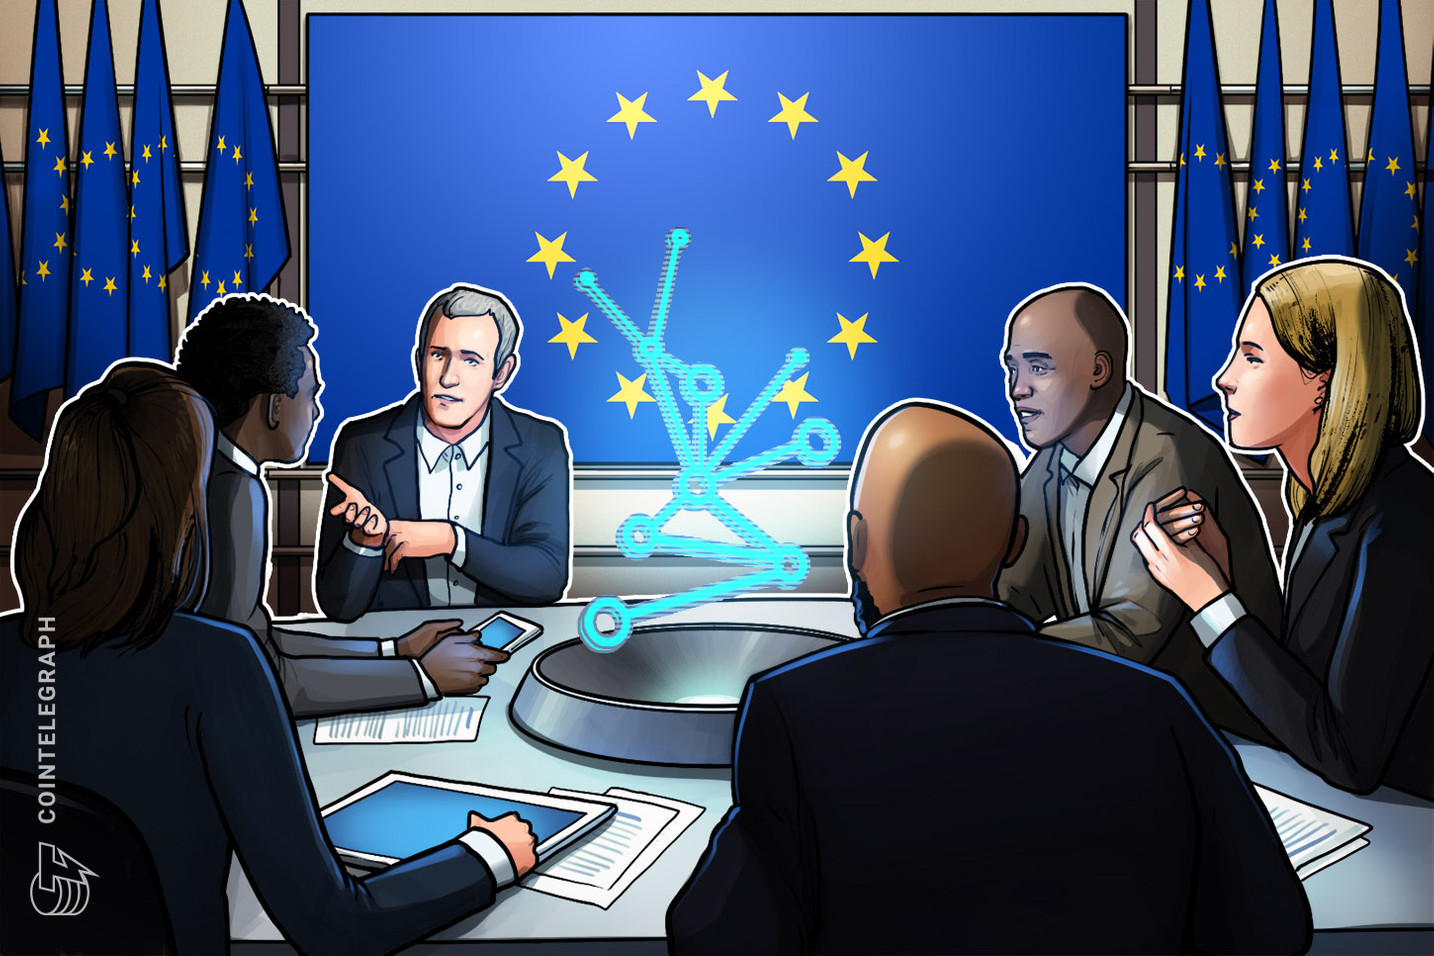 EU to Increase Access to High-Quality Data for Blockchain, AI Projects